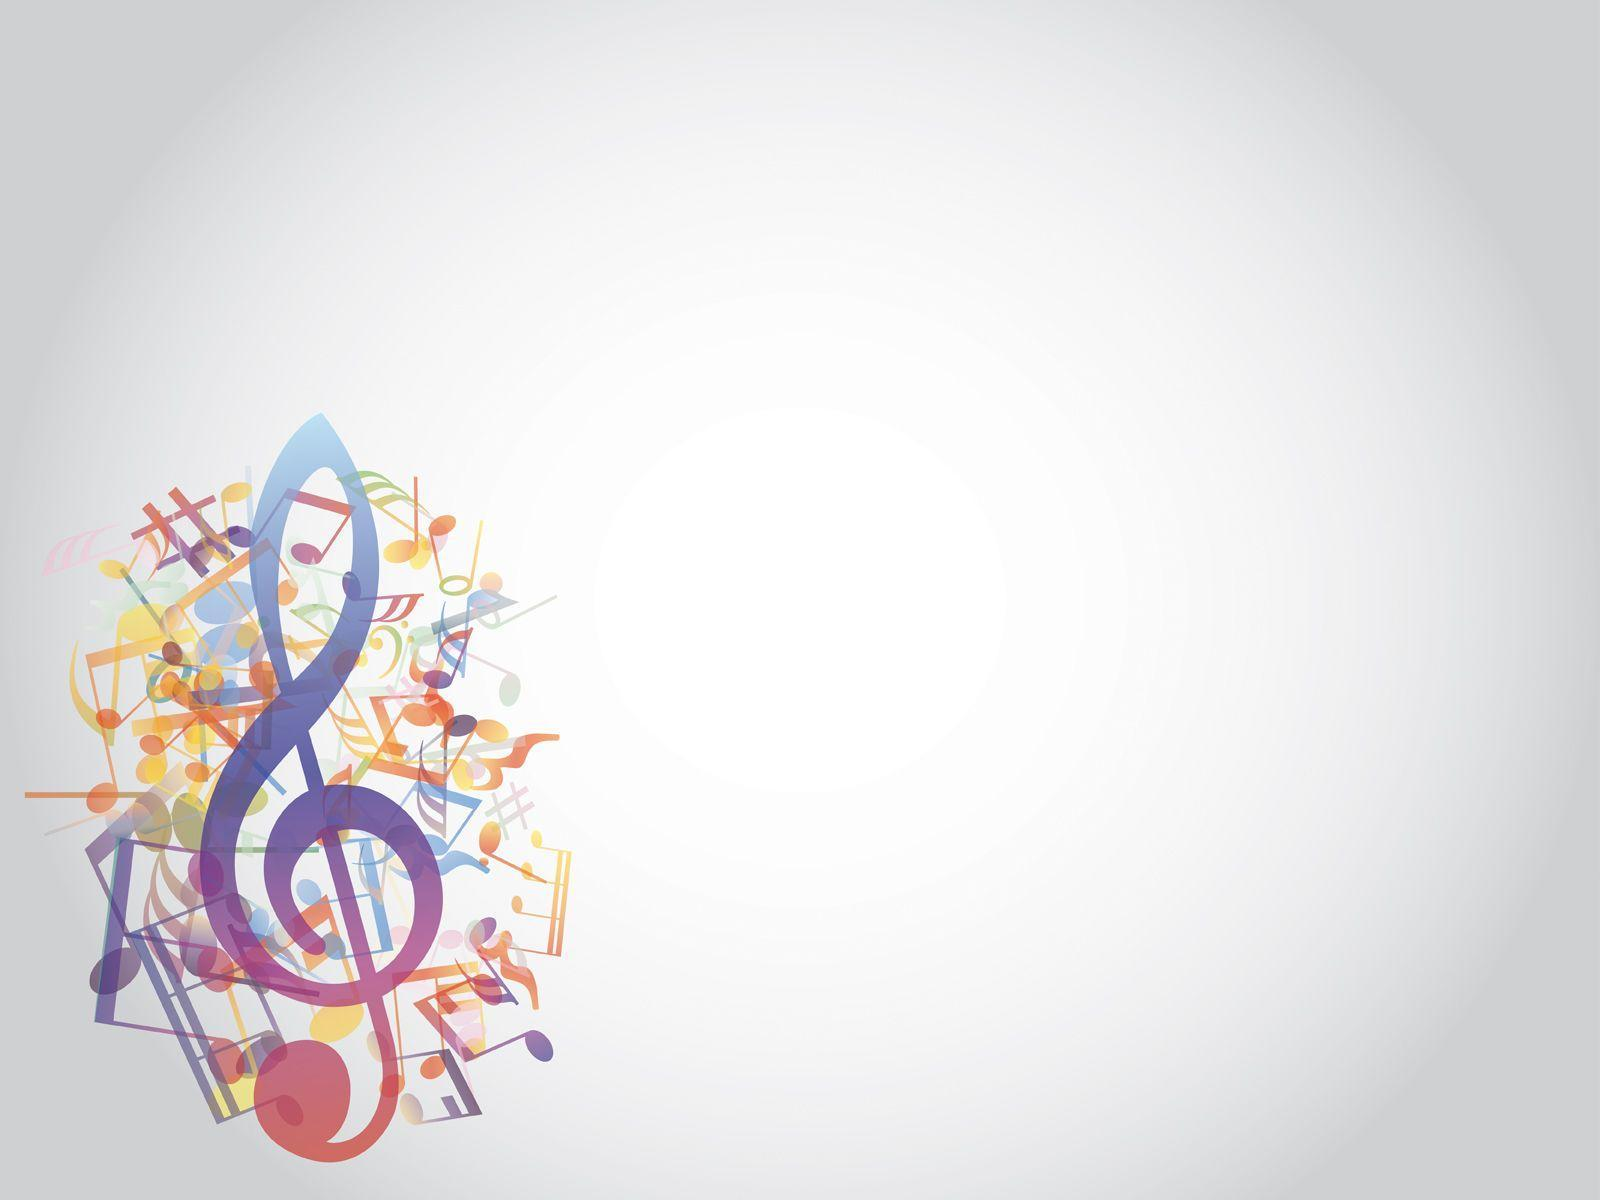 g clef background wallpaper - photo #31